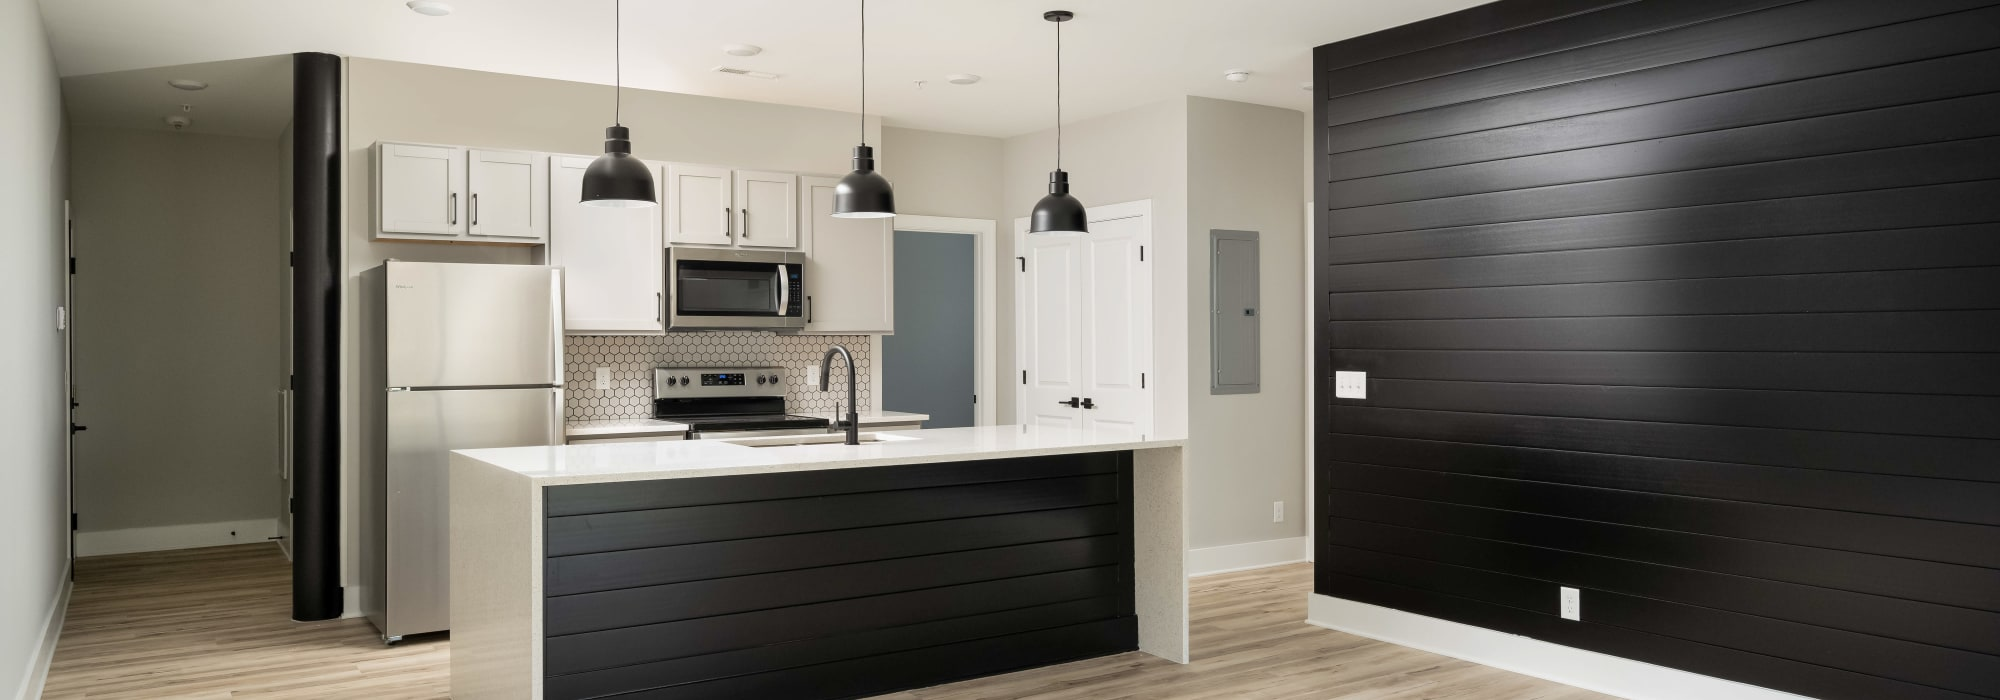 Apartments at Callio Properties in Chattanooga, Tennessee